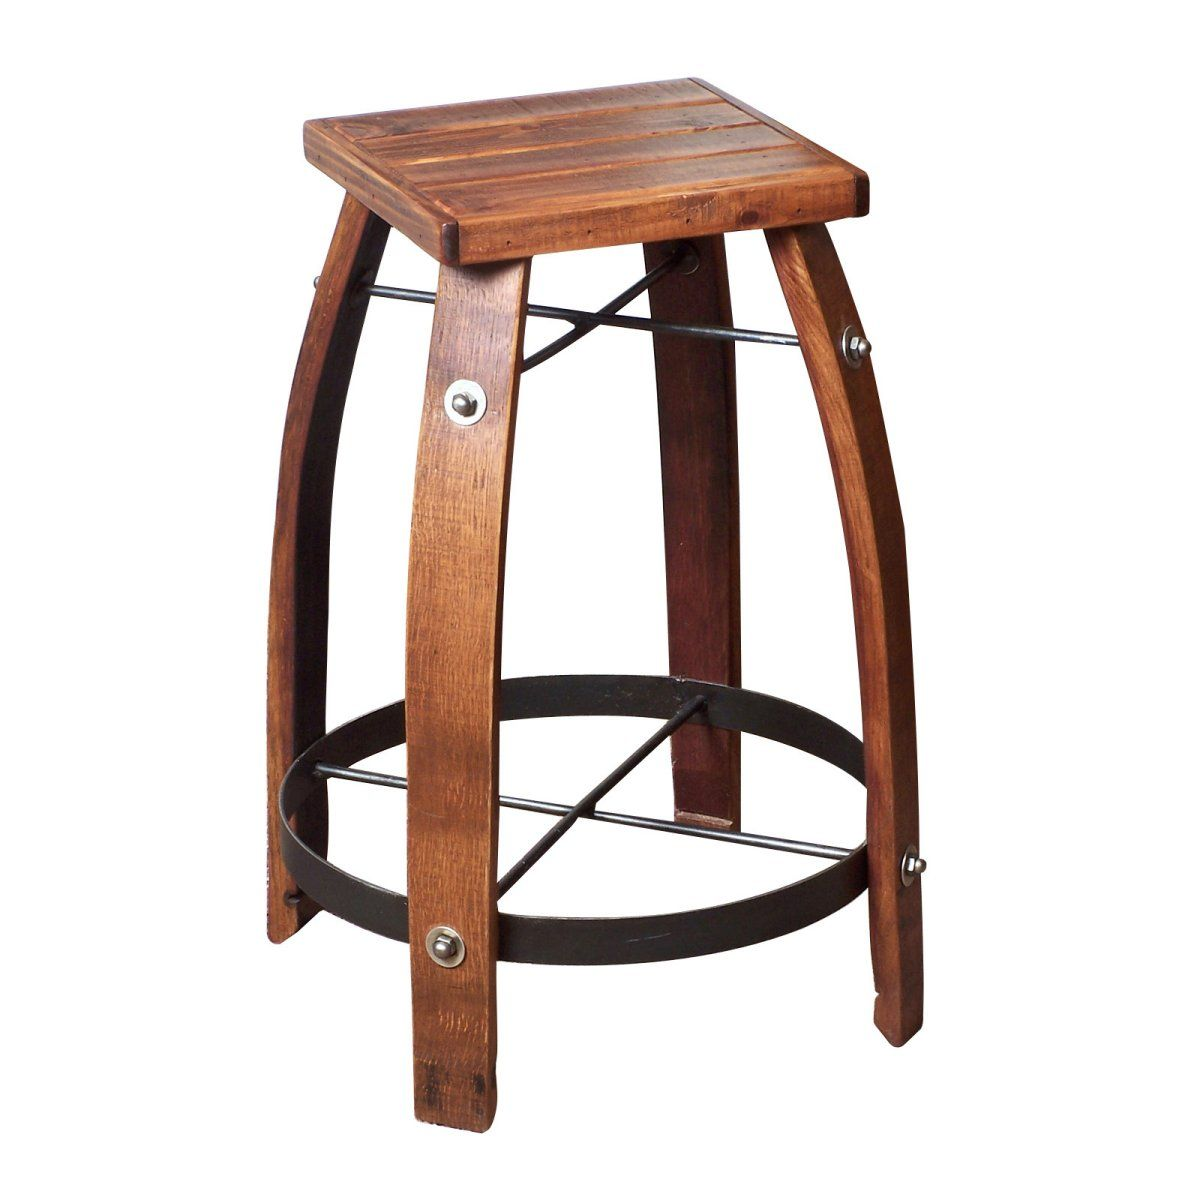 Reclaimed 28 Inch Stave Wine Barrel Bar Stool With Wood Seat